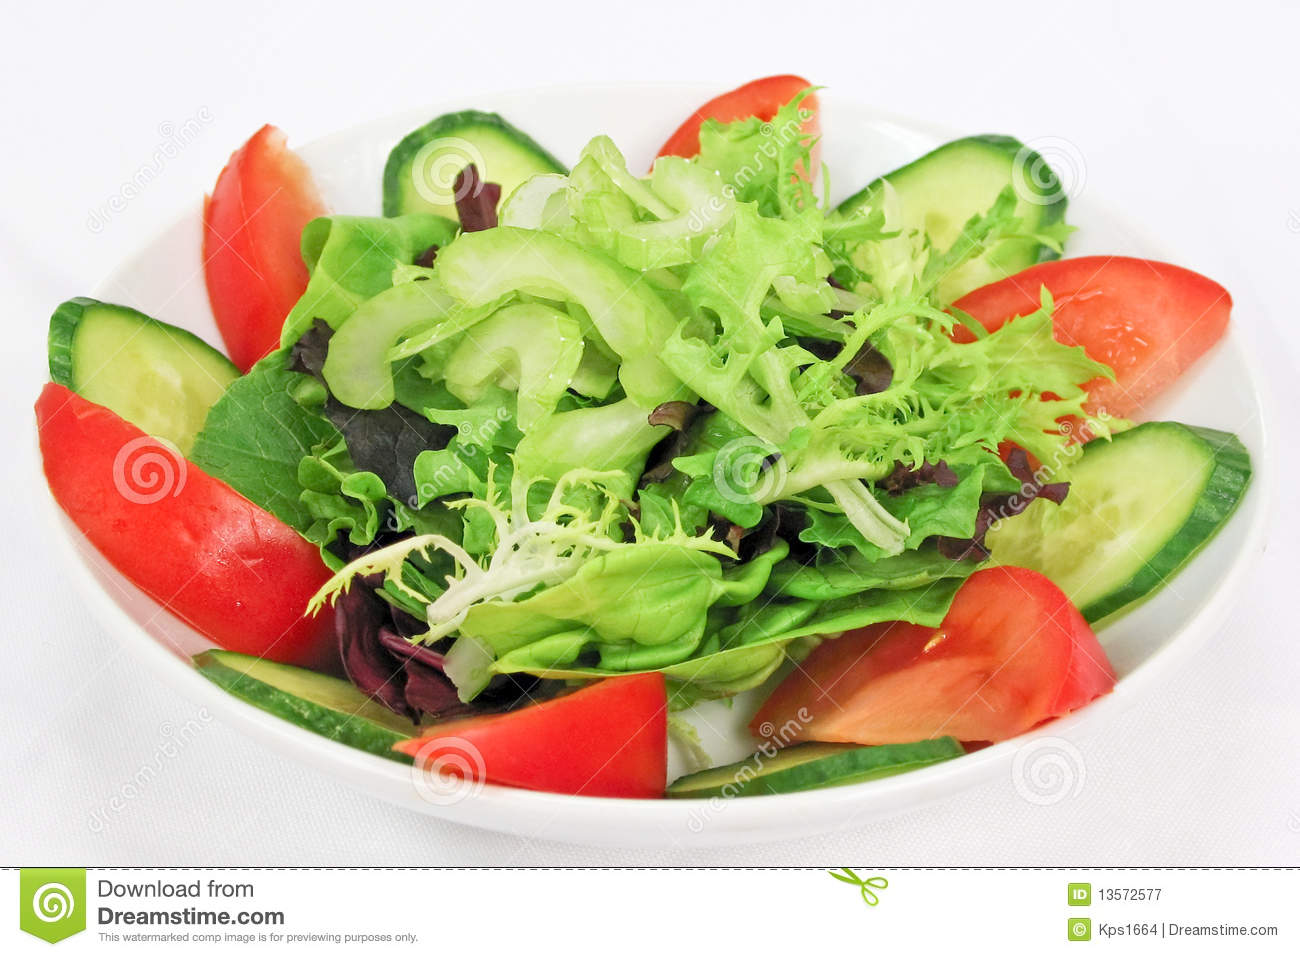 online Fresh Green Garden Salad order in pokhara